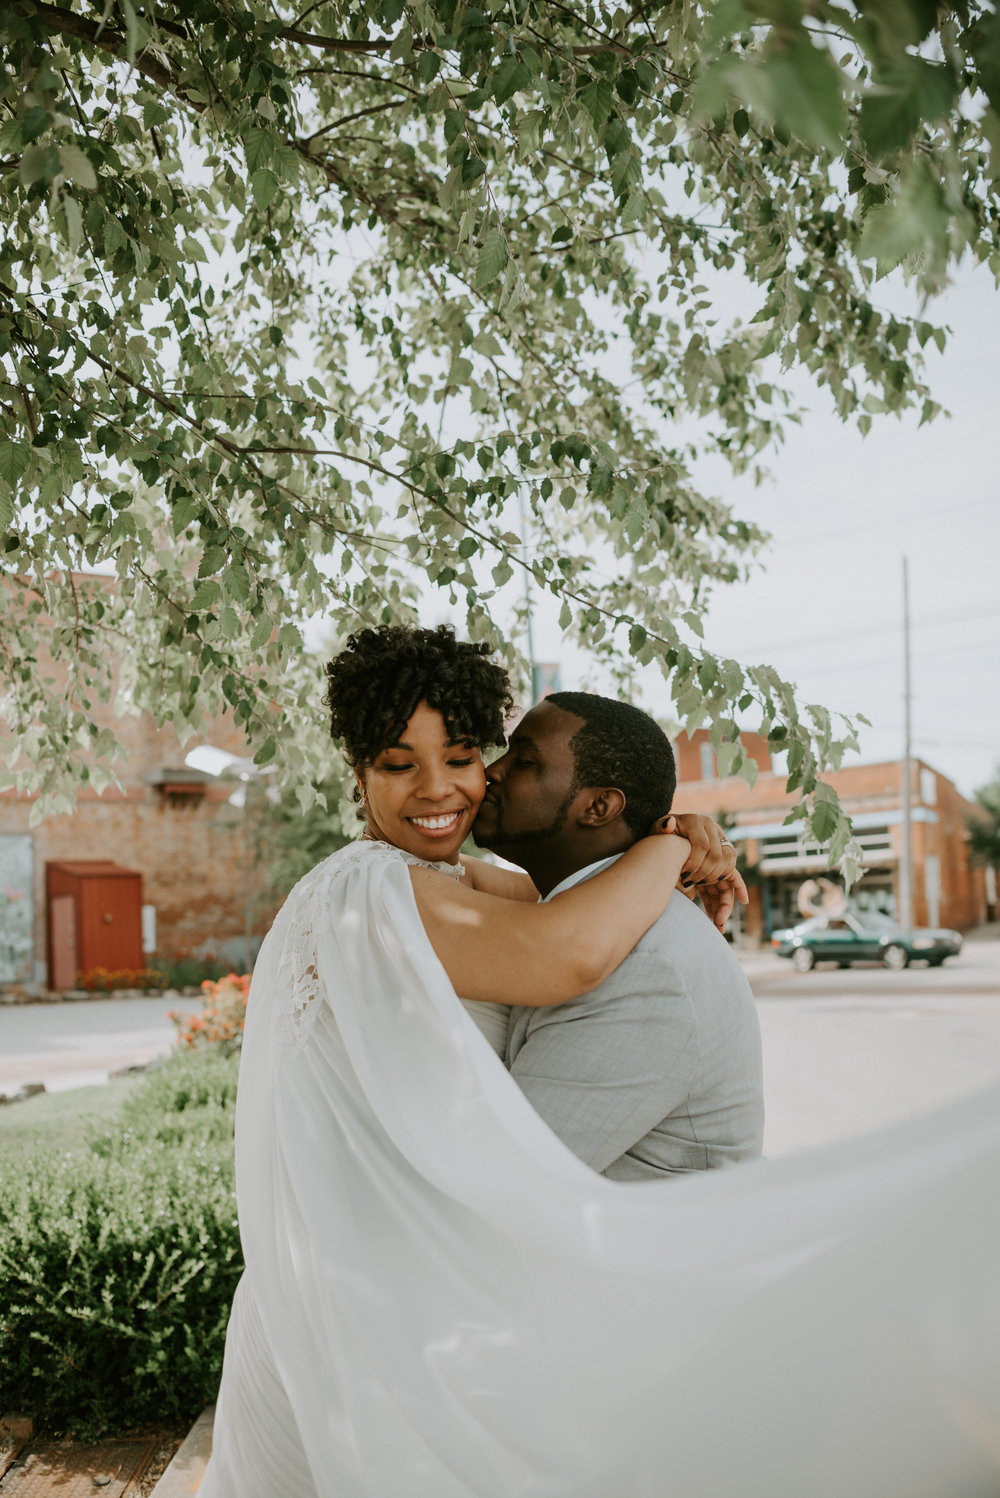 WonderlyCreative_Wedding_6.7.18_Khara&Dwayne_-729.jpg